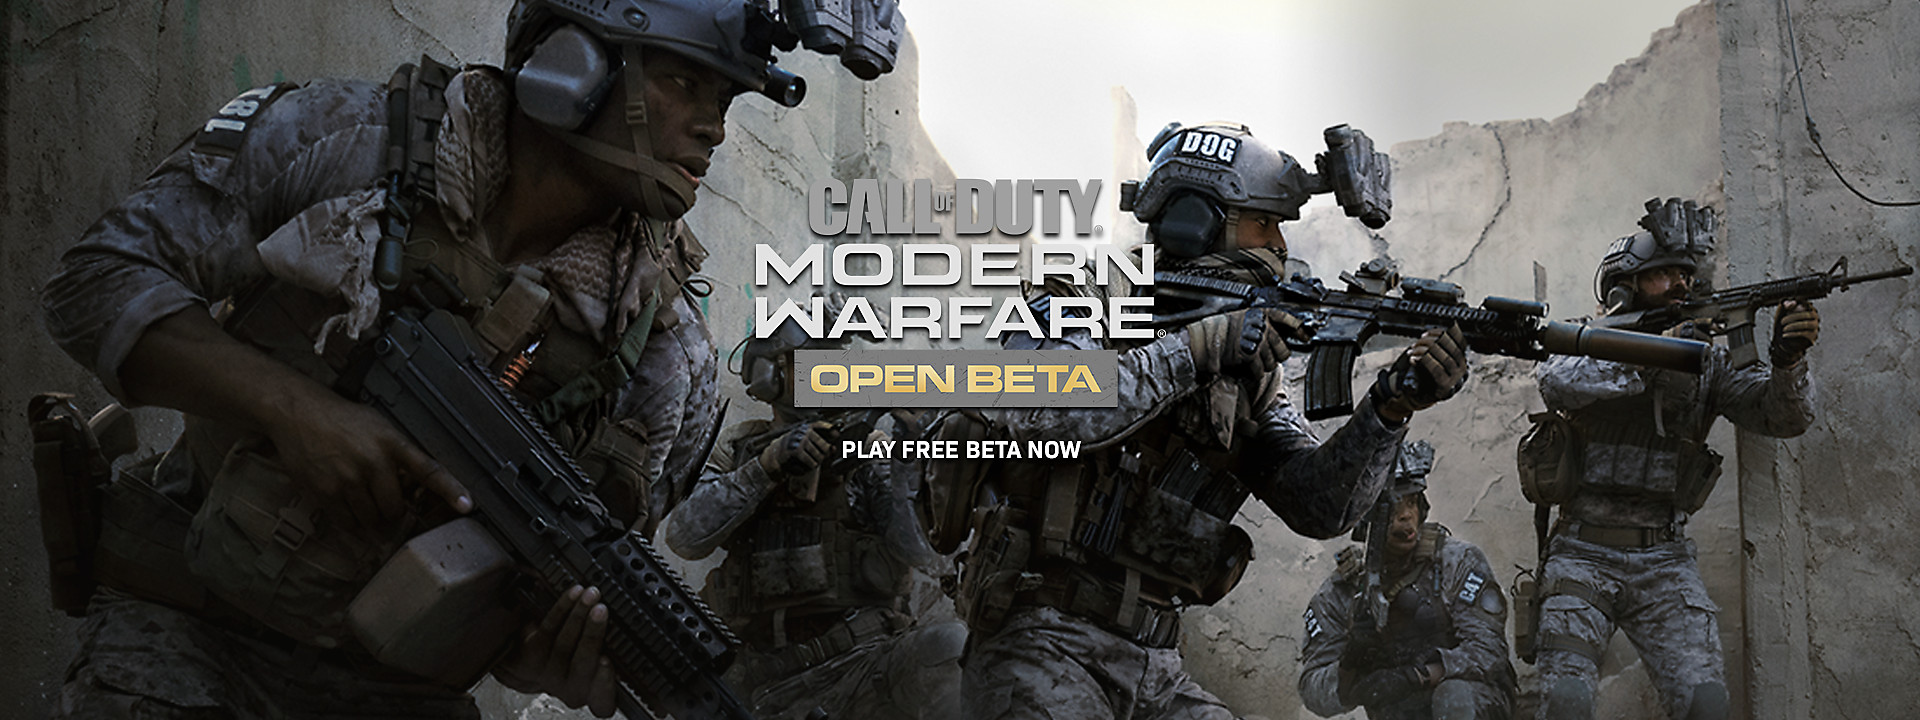 Call of Duty: Modern Warfare - Open Beta Now Available